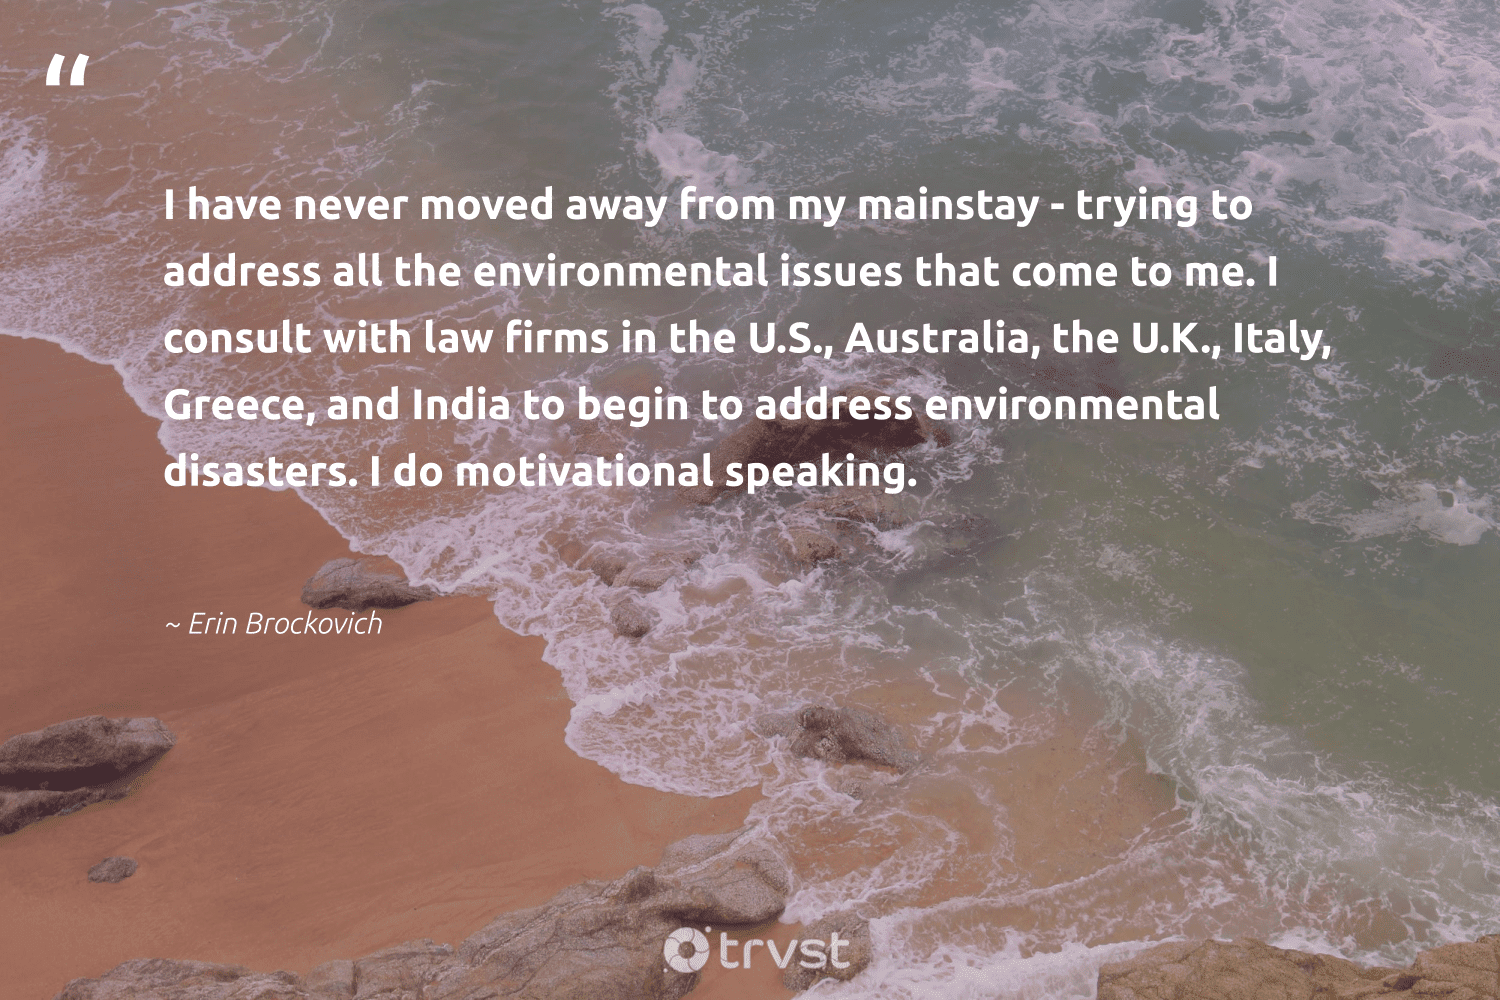 """""""I have never moved away from my mainstay - trying to address all the environmental issues that come to me. I consult with law firms in the U.S., Australia, the U.K., Italy, Greece, and India to begin to address environmental disasters. I do motivational speaking.""""  - Erin Brockovich #trvst #quotes #australia #india #environmental #motivational #timemanagement #gogreen #begreat #dosomething #productive #getoutside"""